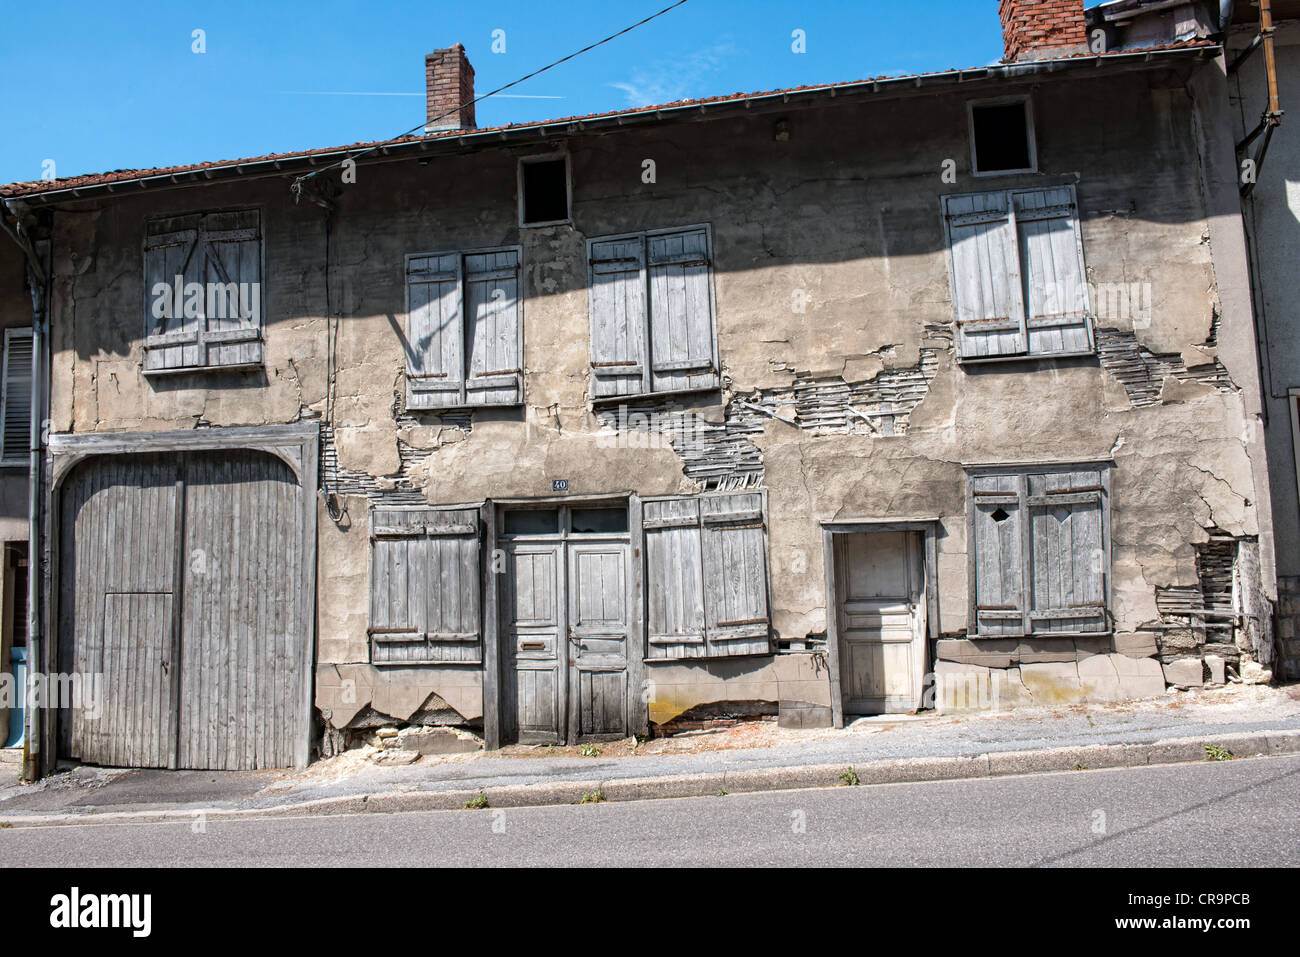 Dilapidated French house - Stock Image